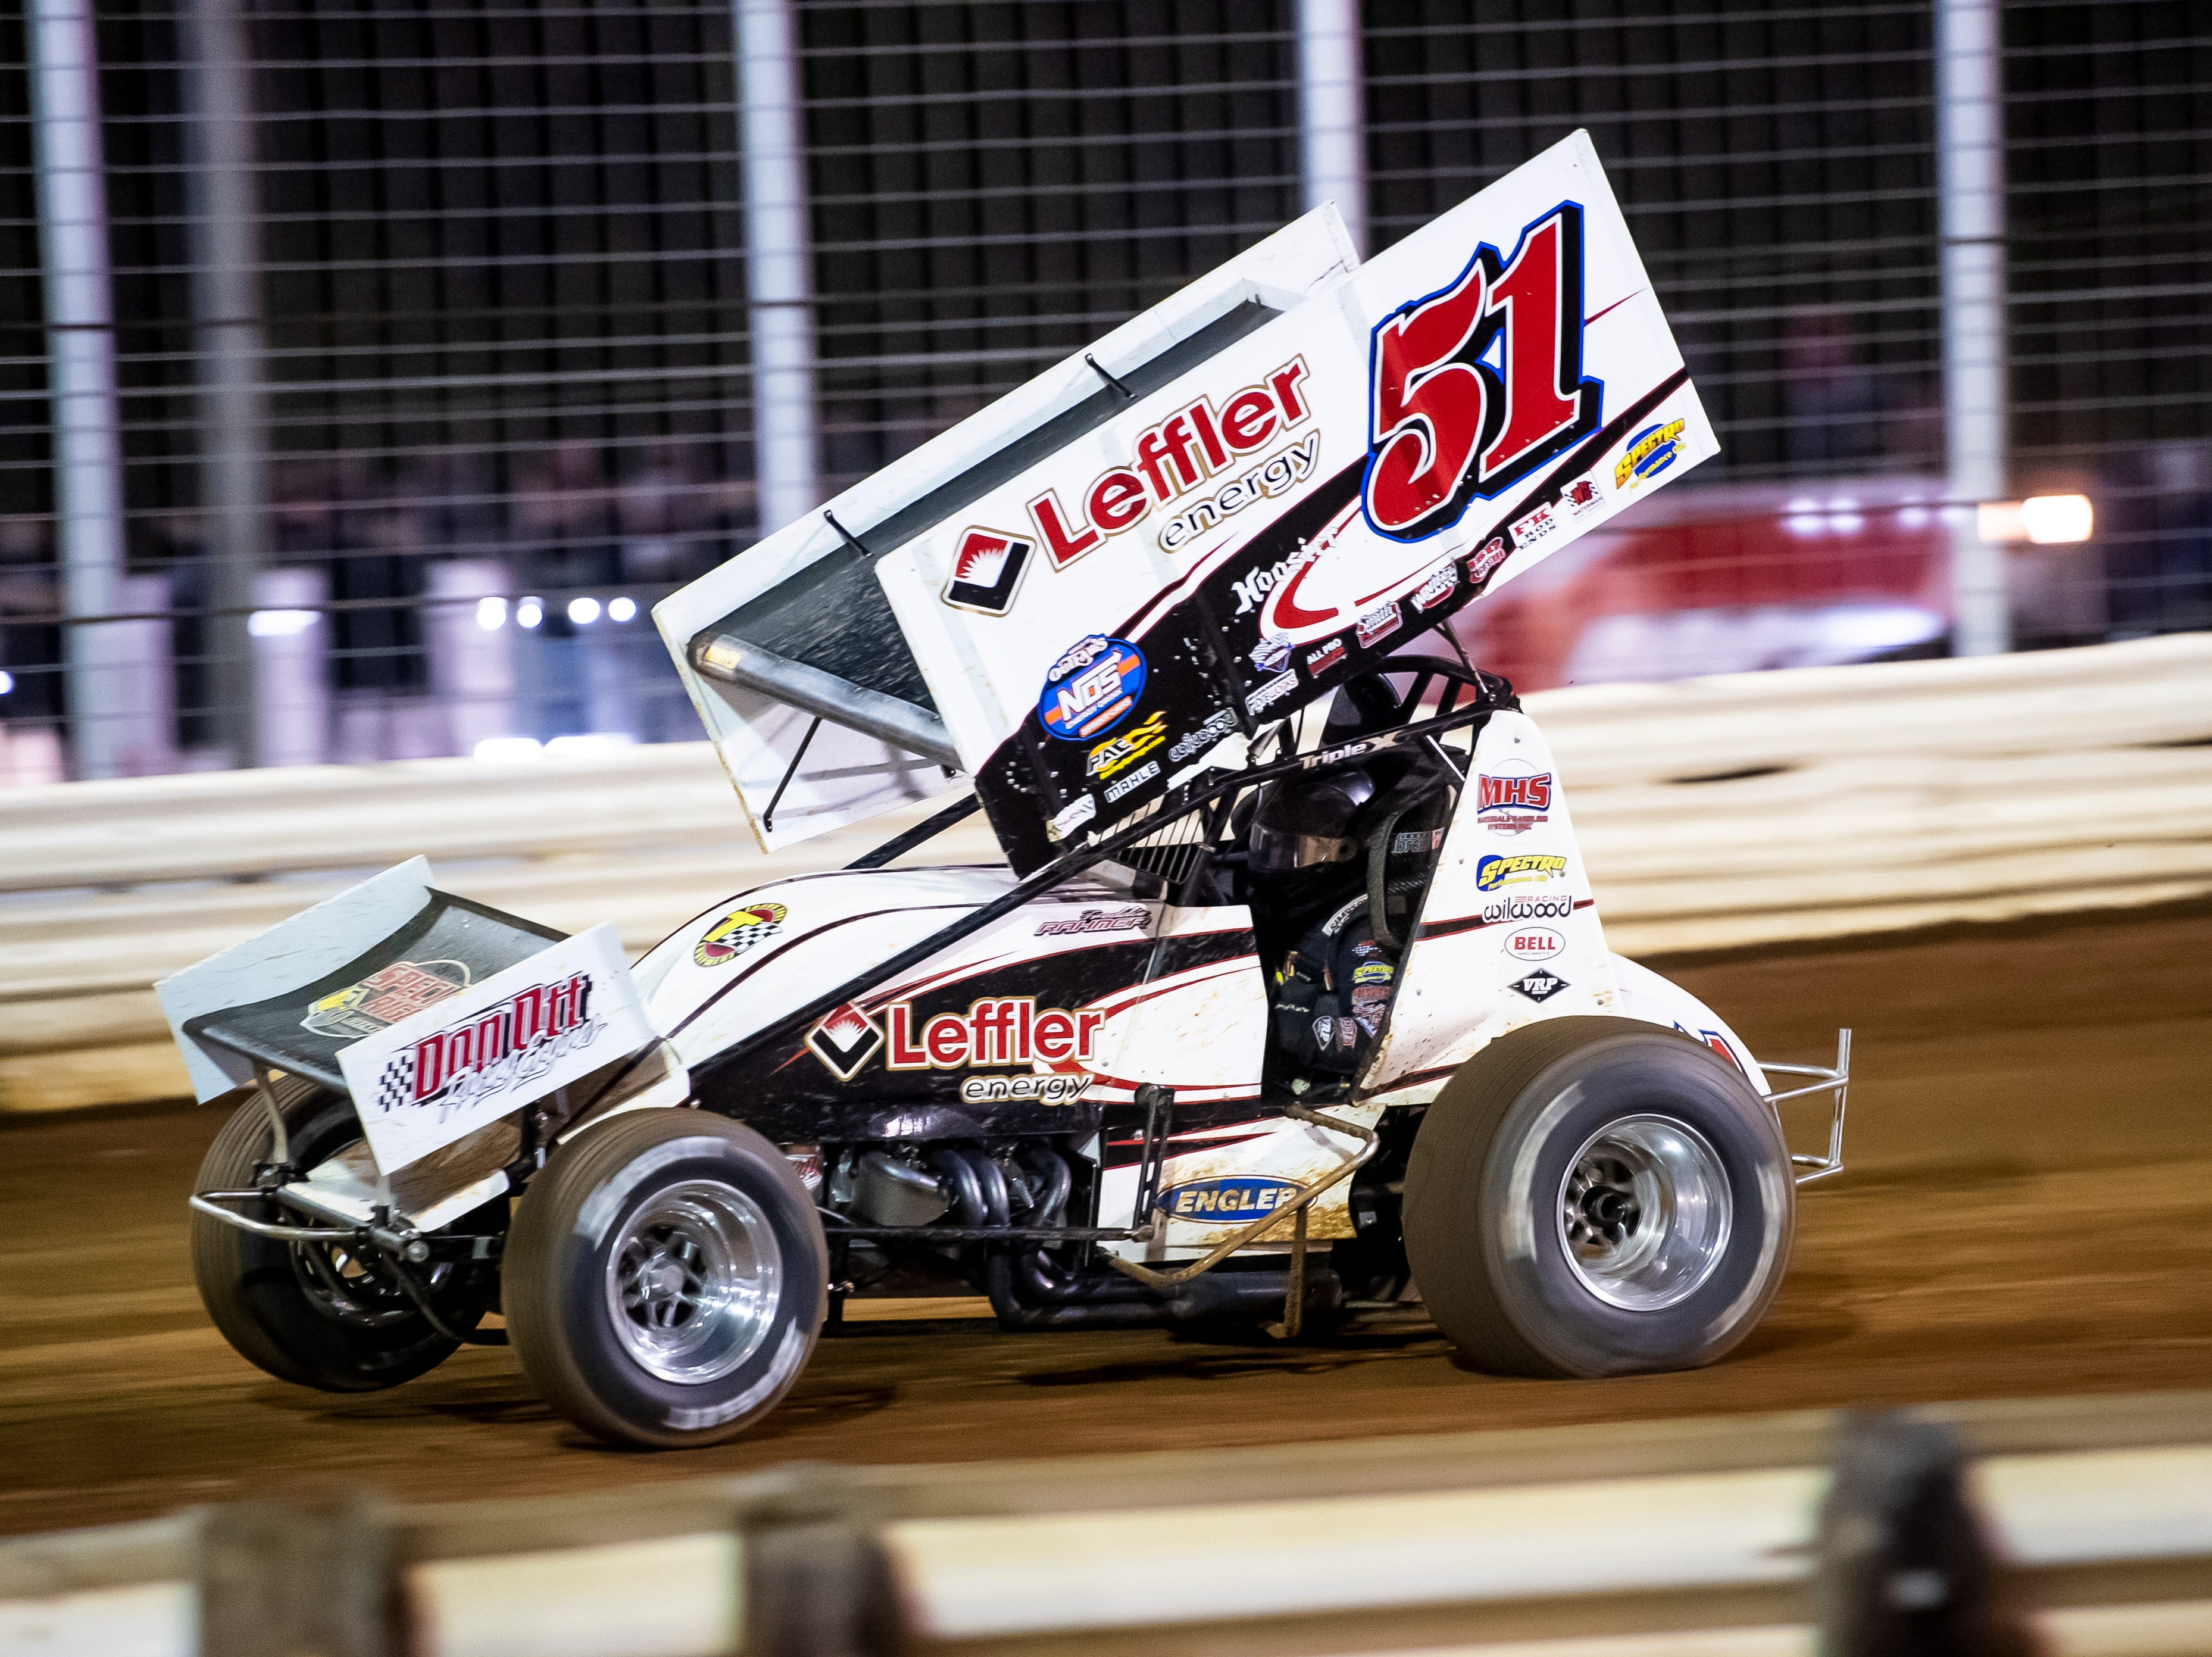 Freddie Rahmer races the number 51 car in the Last Chance Showdown during the World of Outlaws Gettysburg Clash at Lincoln Speedway in Abbottstown on Wednesday, May 15, 2019.